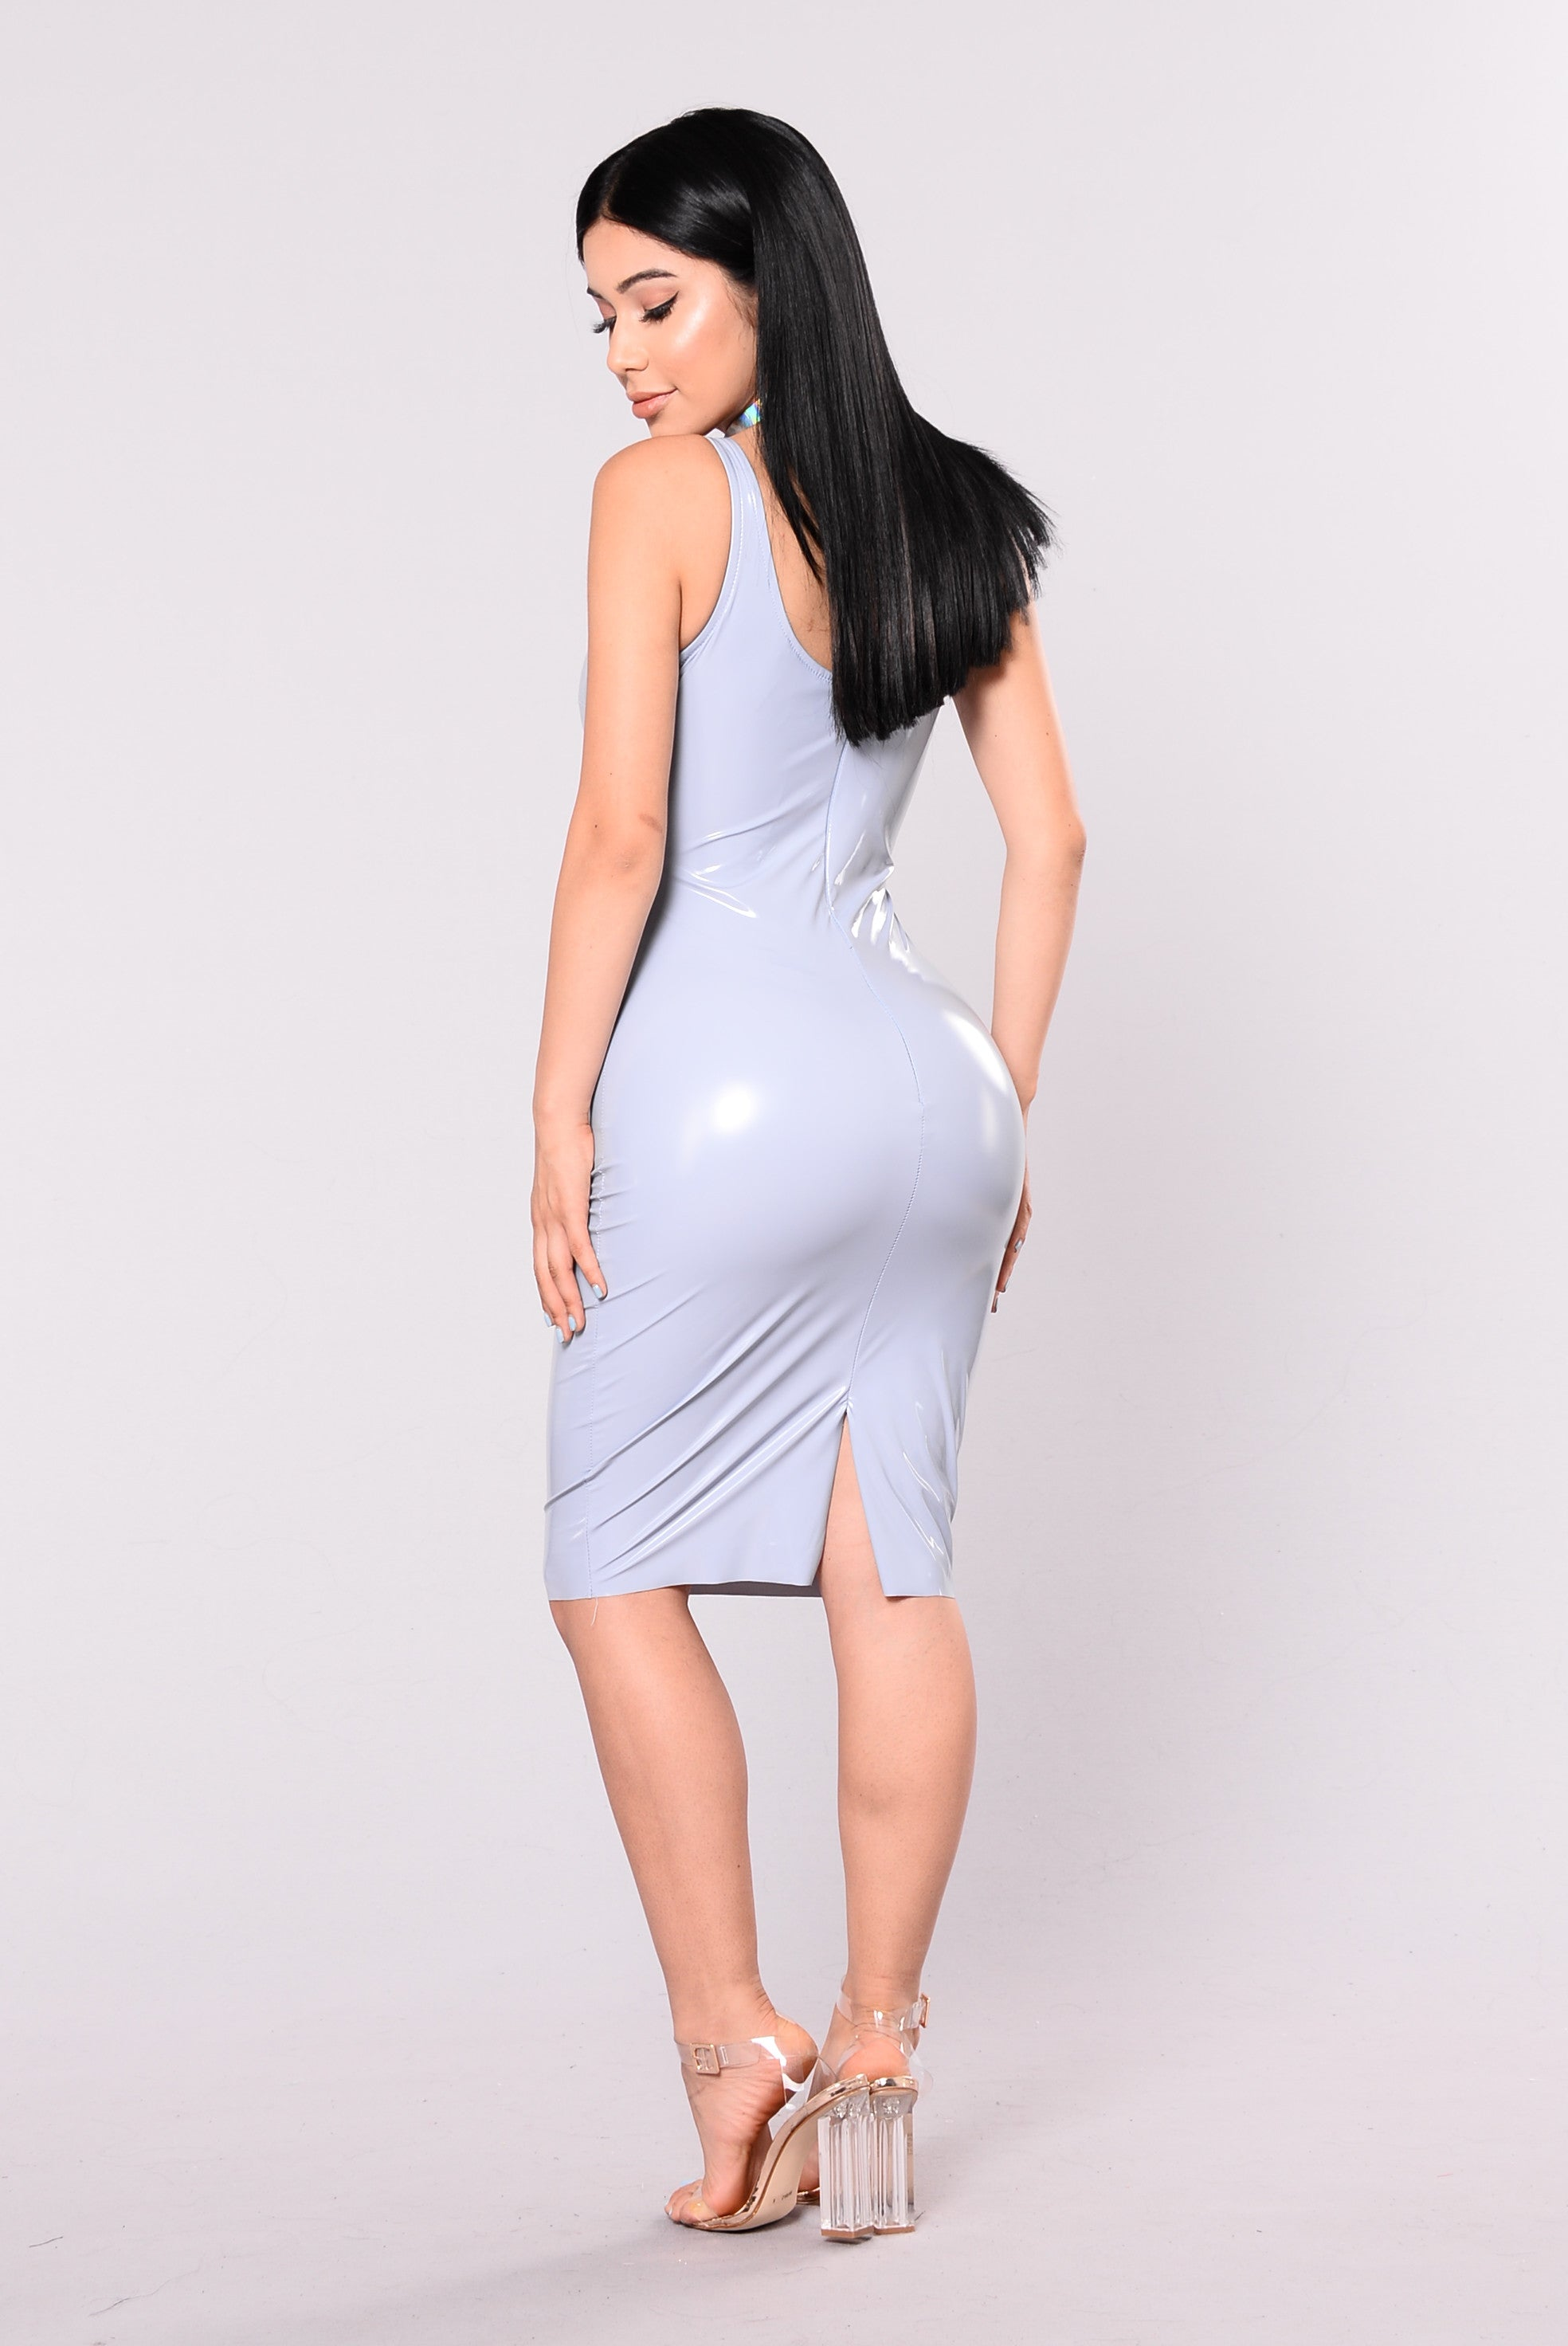 The faux dress light grey what the faux dress light grey ombrellifo Choice Image